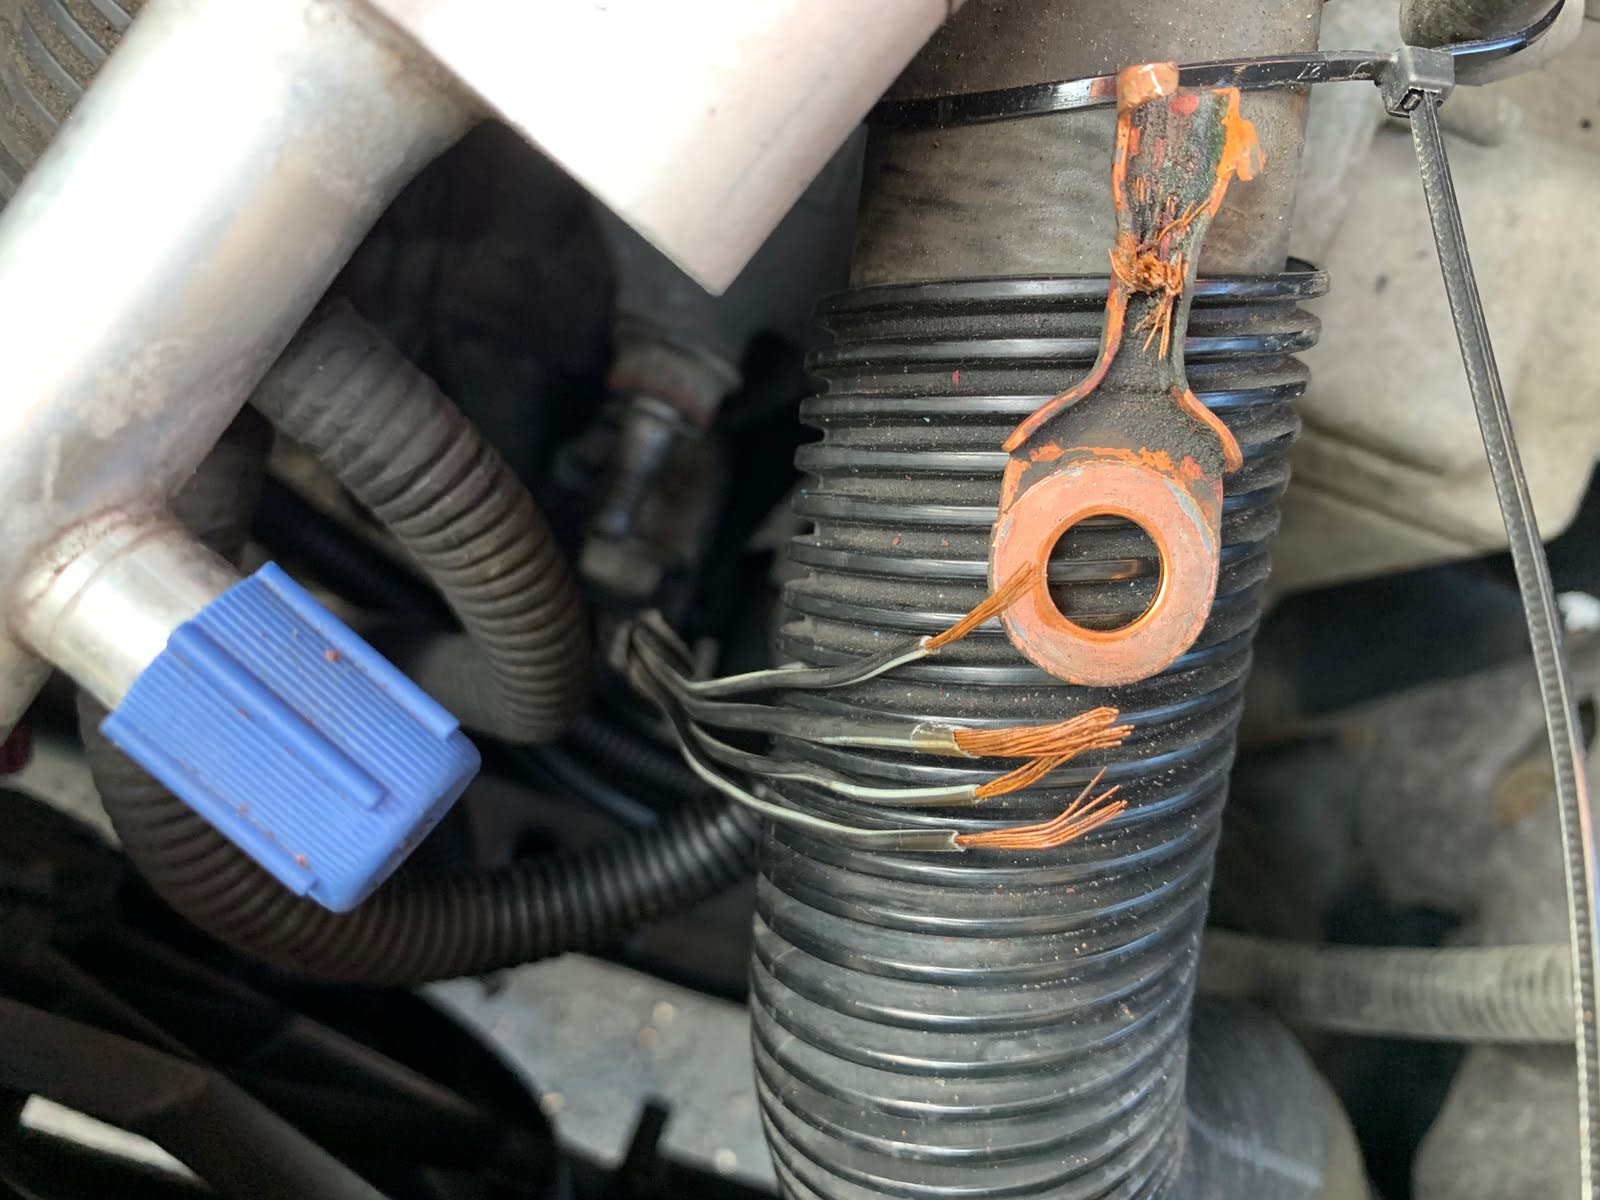 Pleasing Chevrolet Cobalt Questions Has It Ever Been Figured Out What Is Wiring Cloud Overrenstrafr09Org